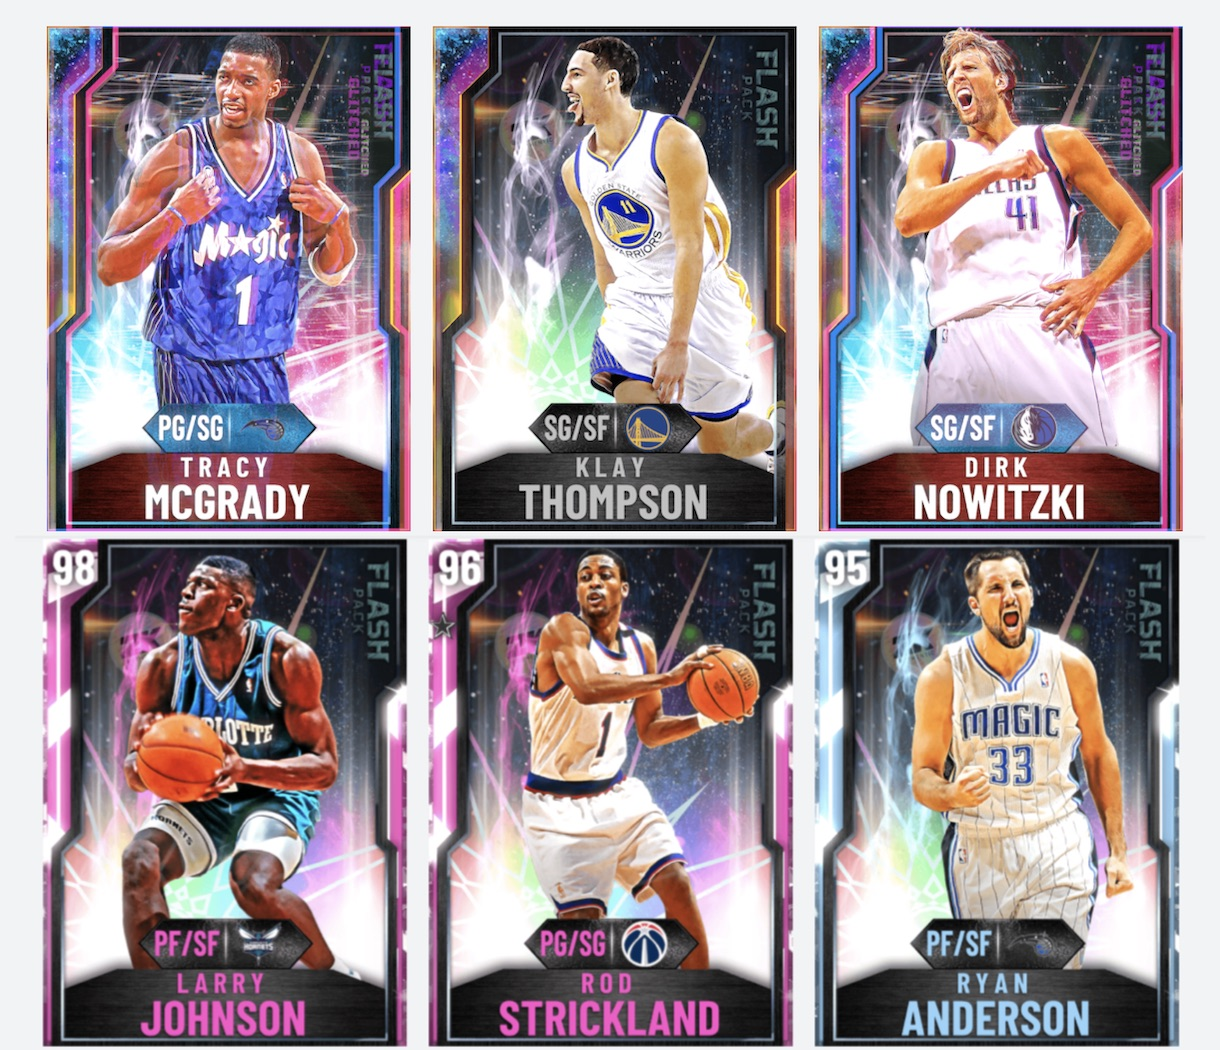 dirk nowitzki, tracy mcgrady and other new nba 2k20 flash pack 7 cards